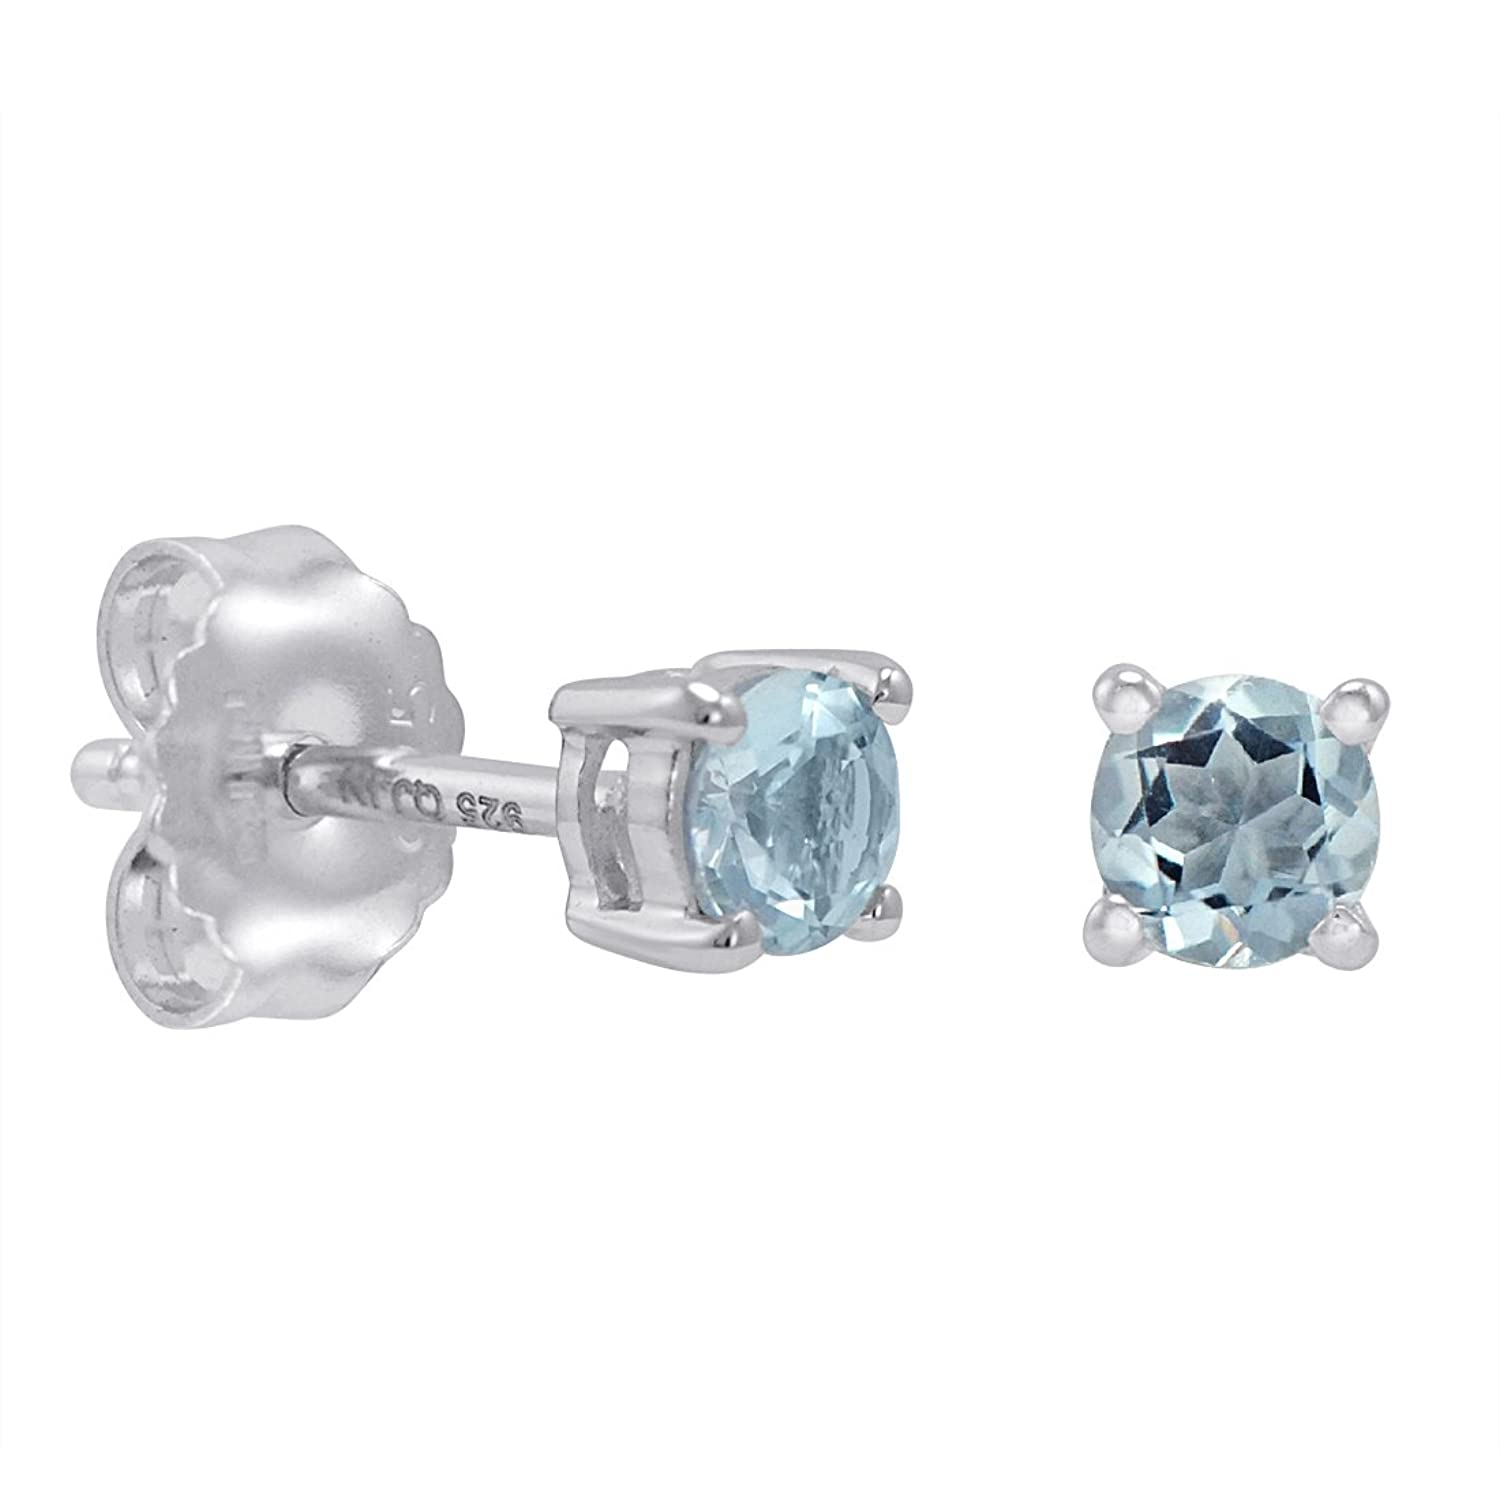 grahams aqua a aquamarine set and stud marine jewellers diamond diamonds earrings gold tilly in image